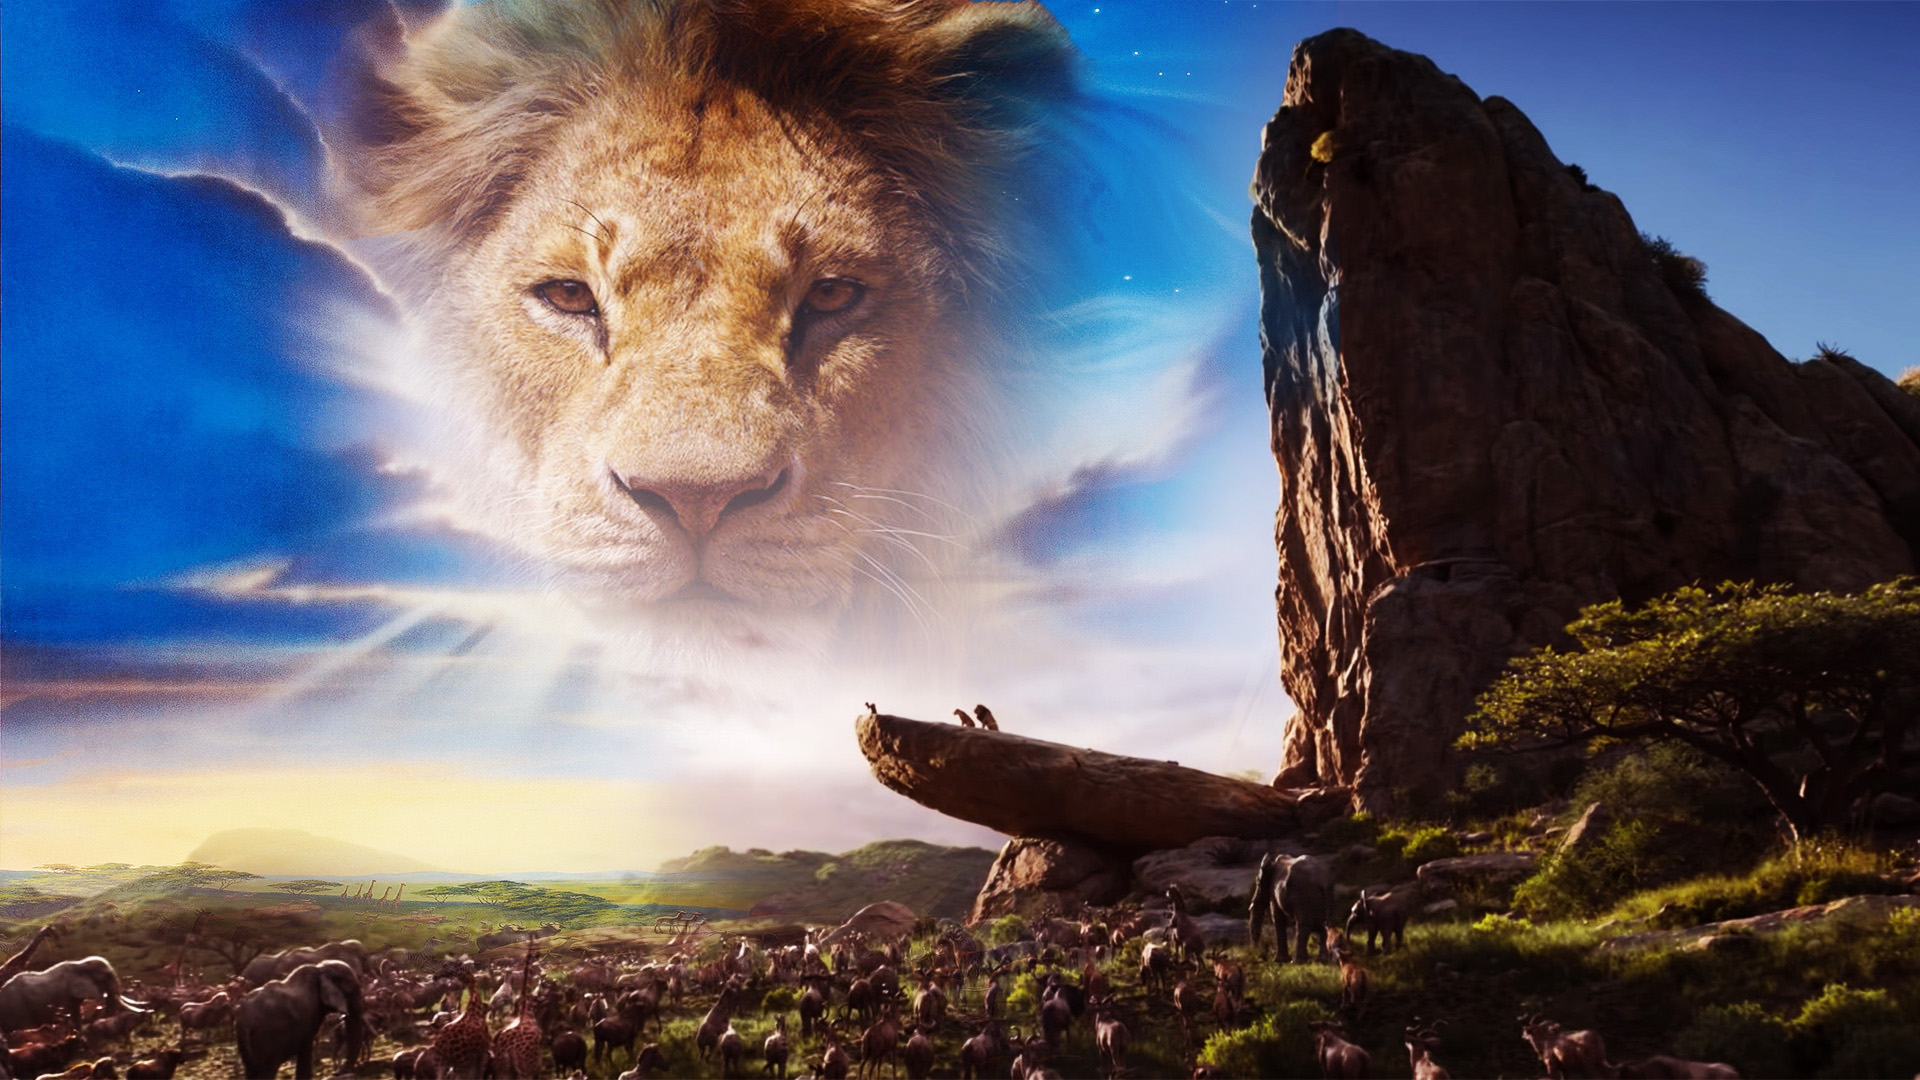 The Lion King (2019) Wallpaper by The-Dark-Mamba-995 on ...